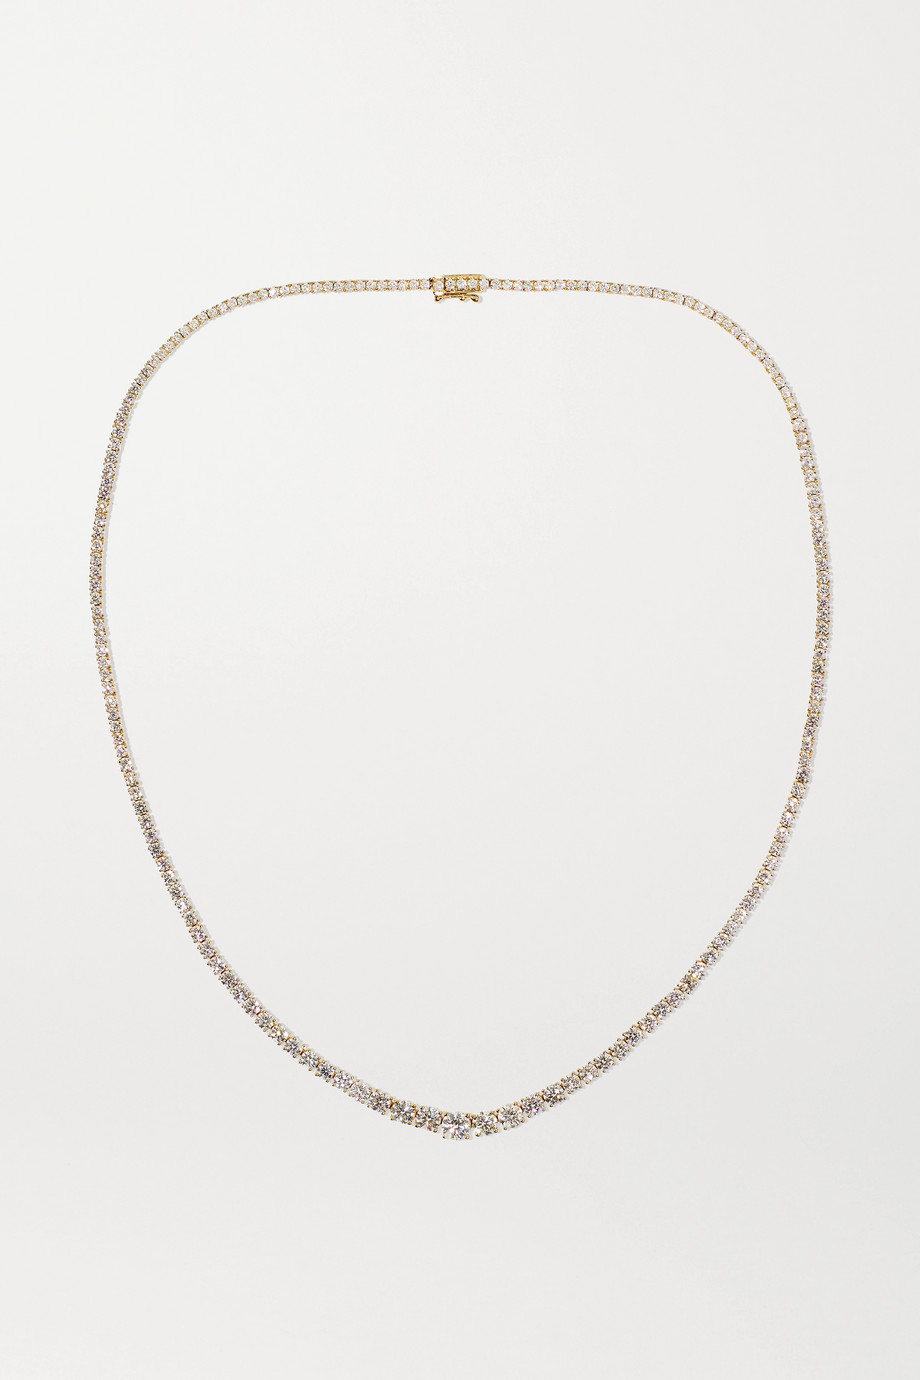 Anita Ko Hepburn 18-karat gold diamond necklace